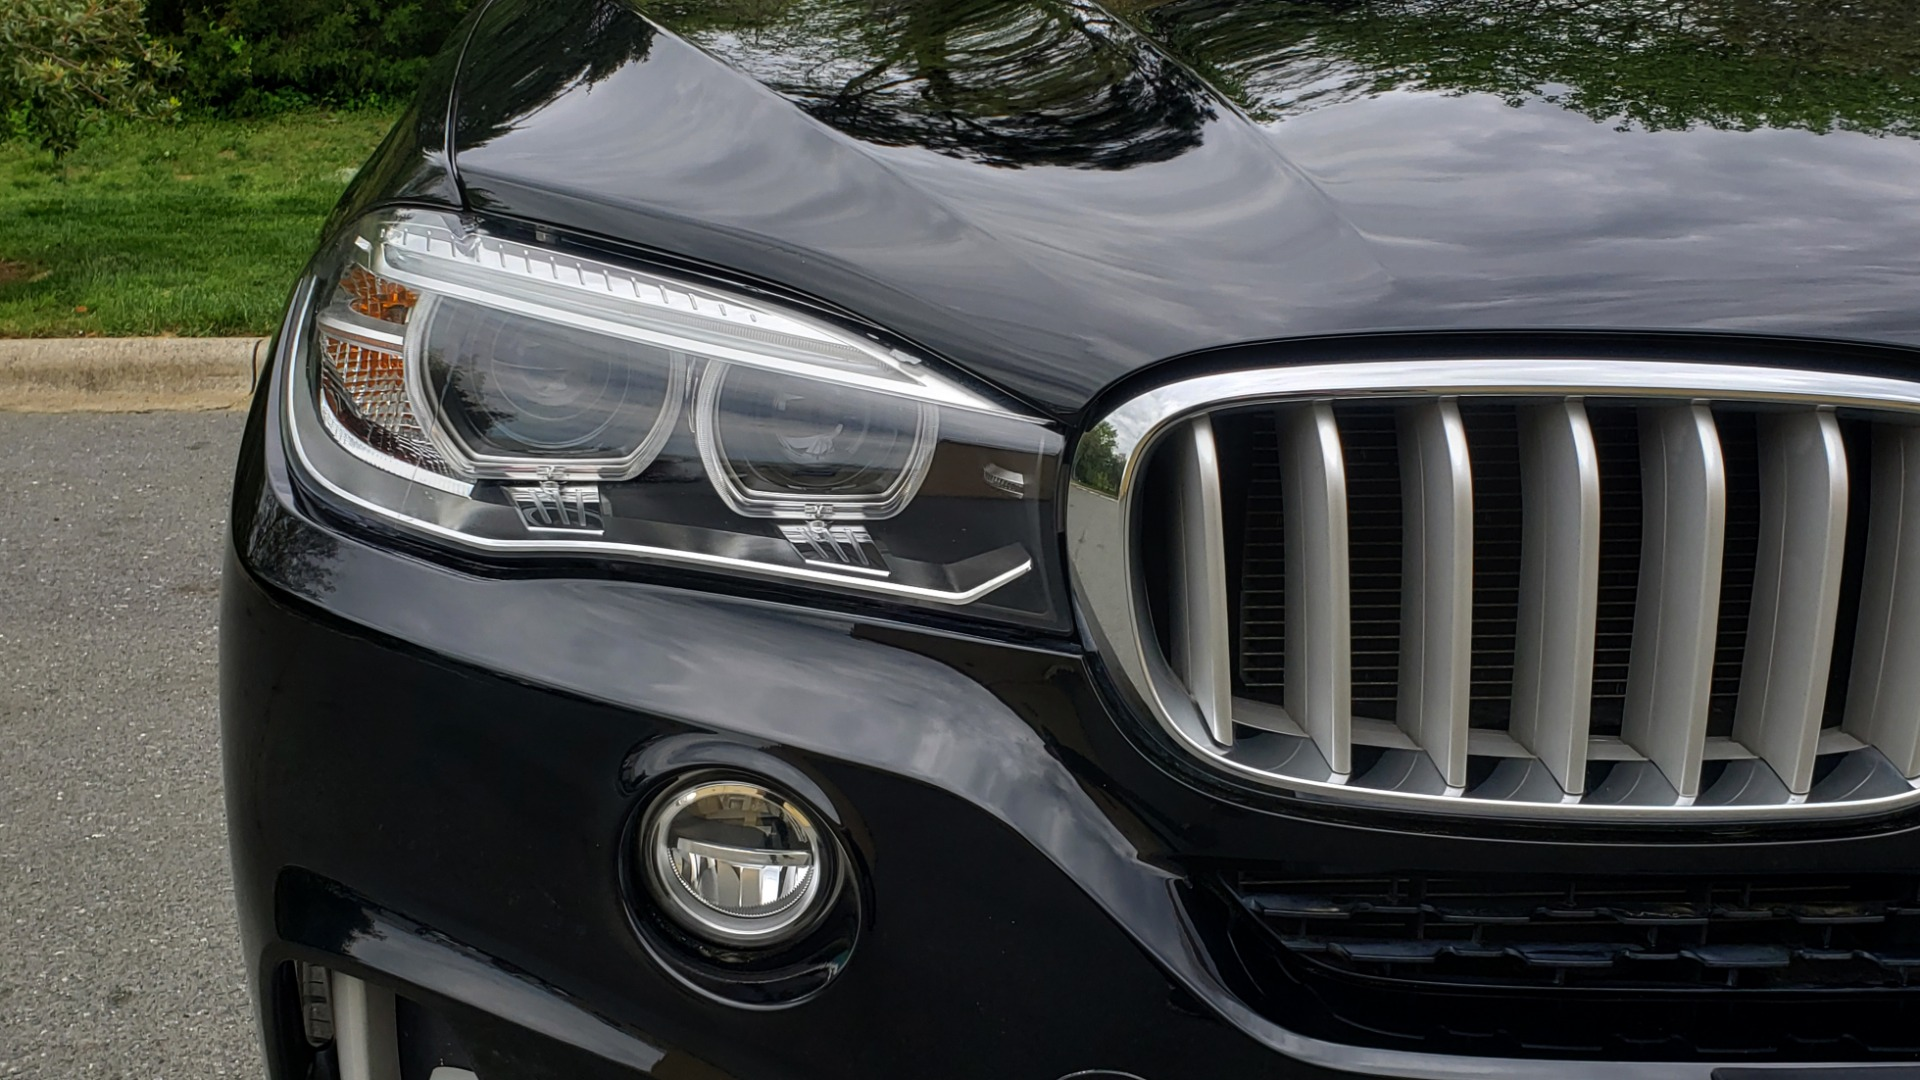 Used 2017 BMW X5 XDRIVE35I / NAV / SUNROOF / REARVIEW / HTD STS for sale Sold at Formula Imports in Charlotte NC 28227 27